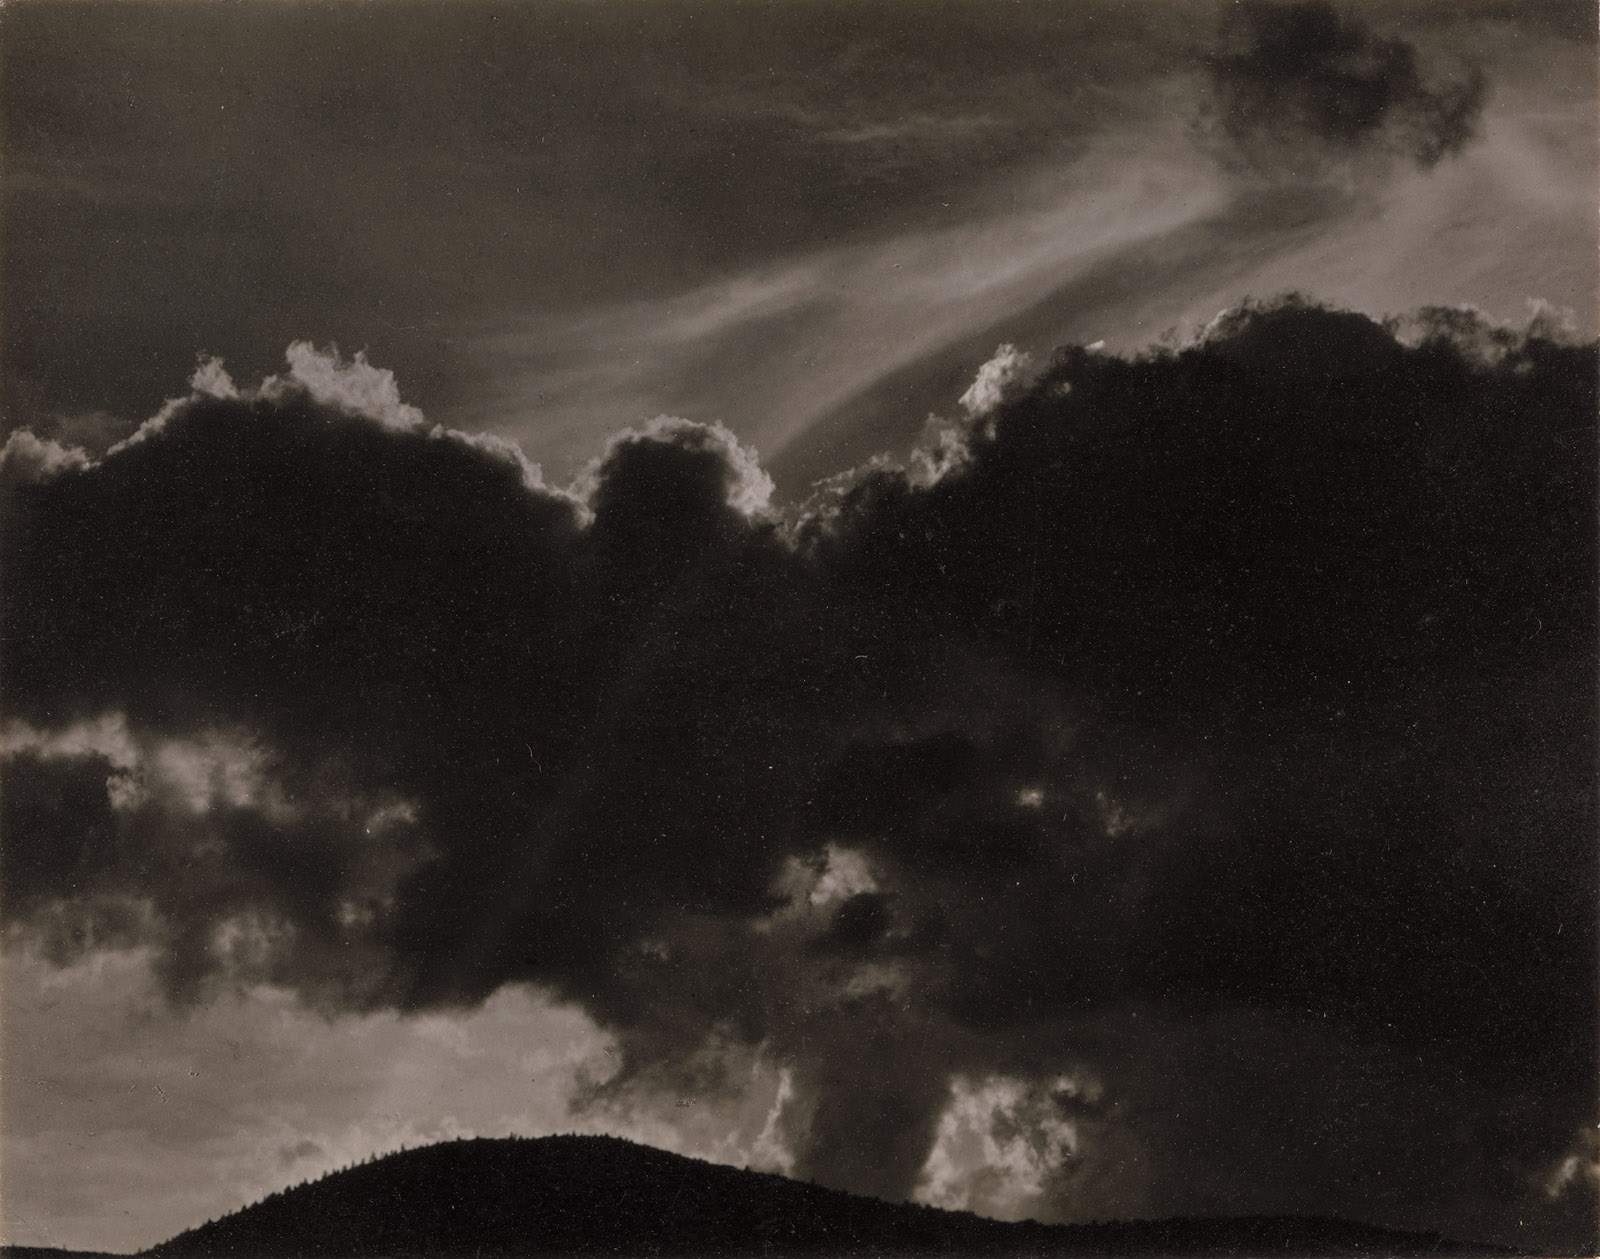 Songs of the Sky, 1924, photograph by Alfred Stieglitz